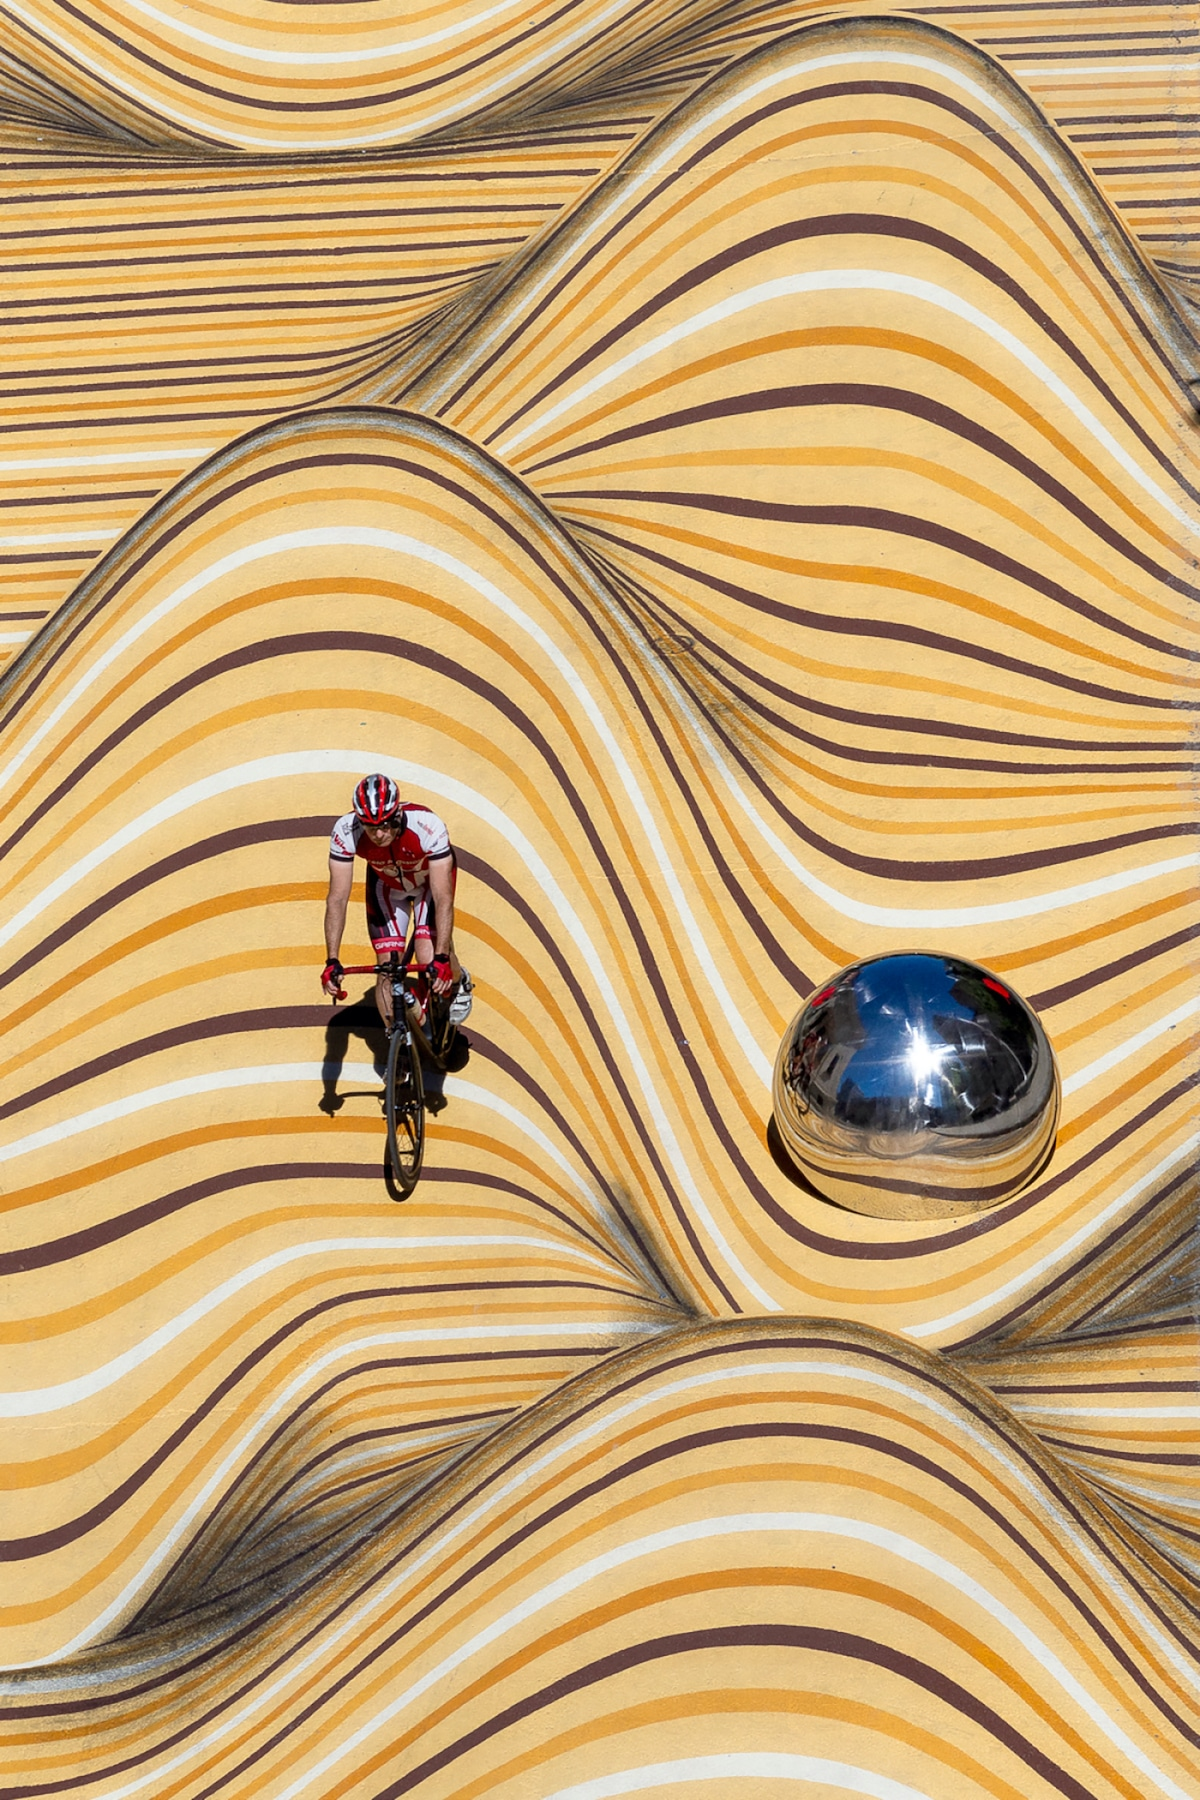 Biking Across Anamorphic Mural Moving Dunes